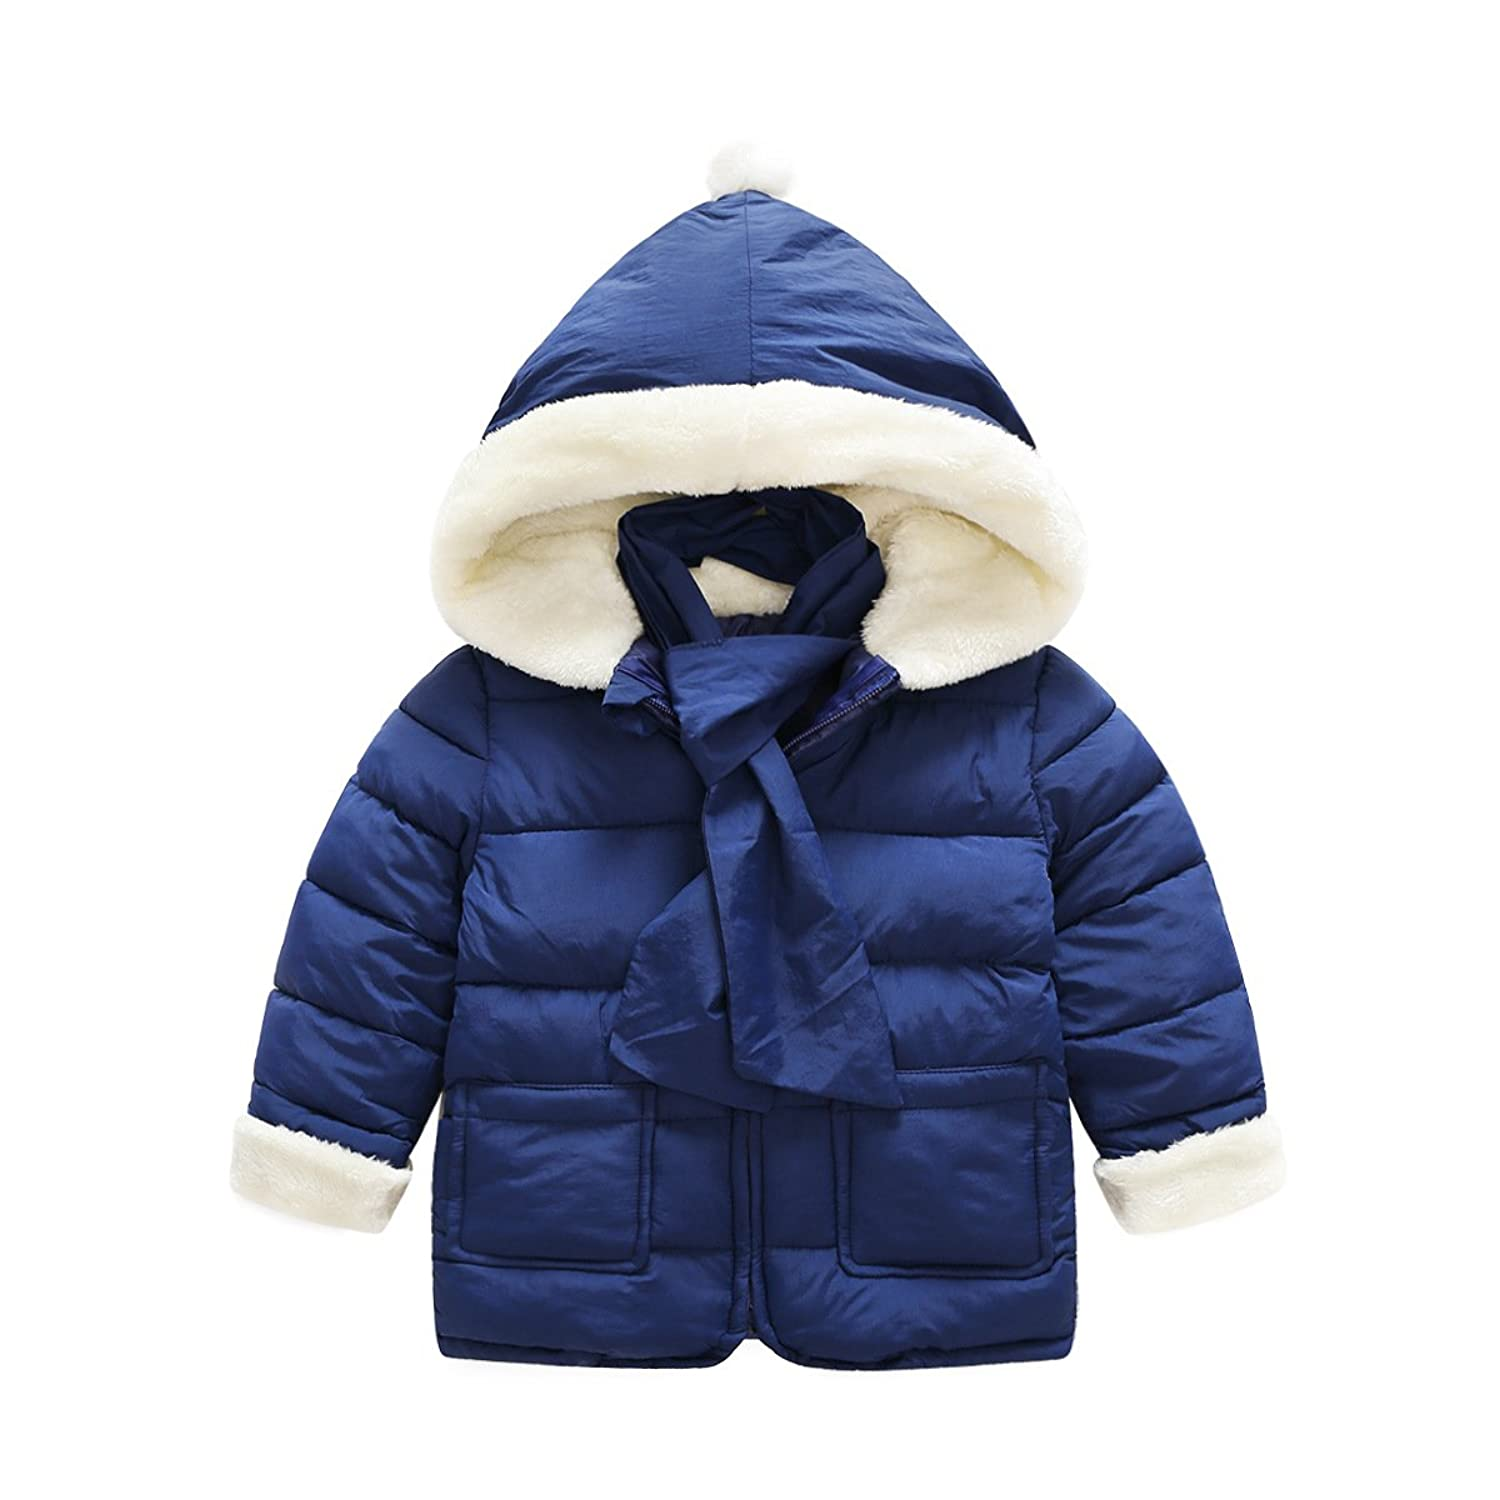 c6a934d660fa2 Baby Girls Boys Kids Warm Sweet Winter Jacket Hooded Cotton Padded clothes  Outerwear Coat Jacket Snowsuit